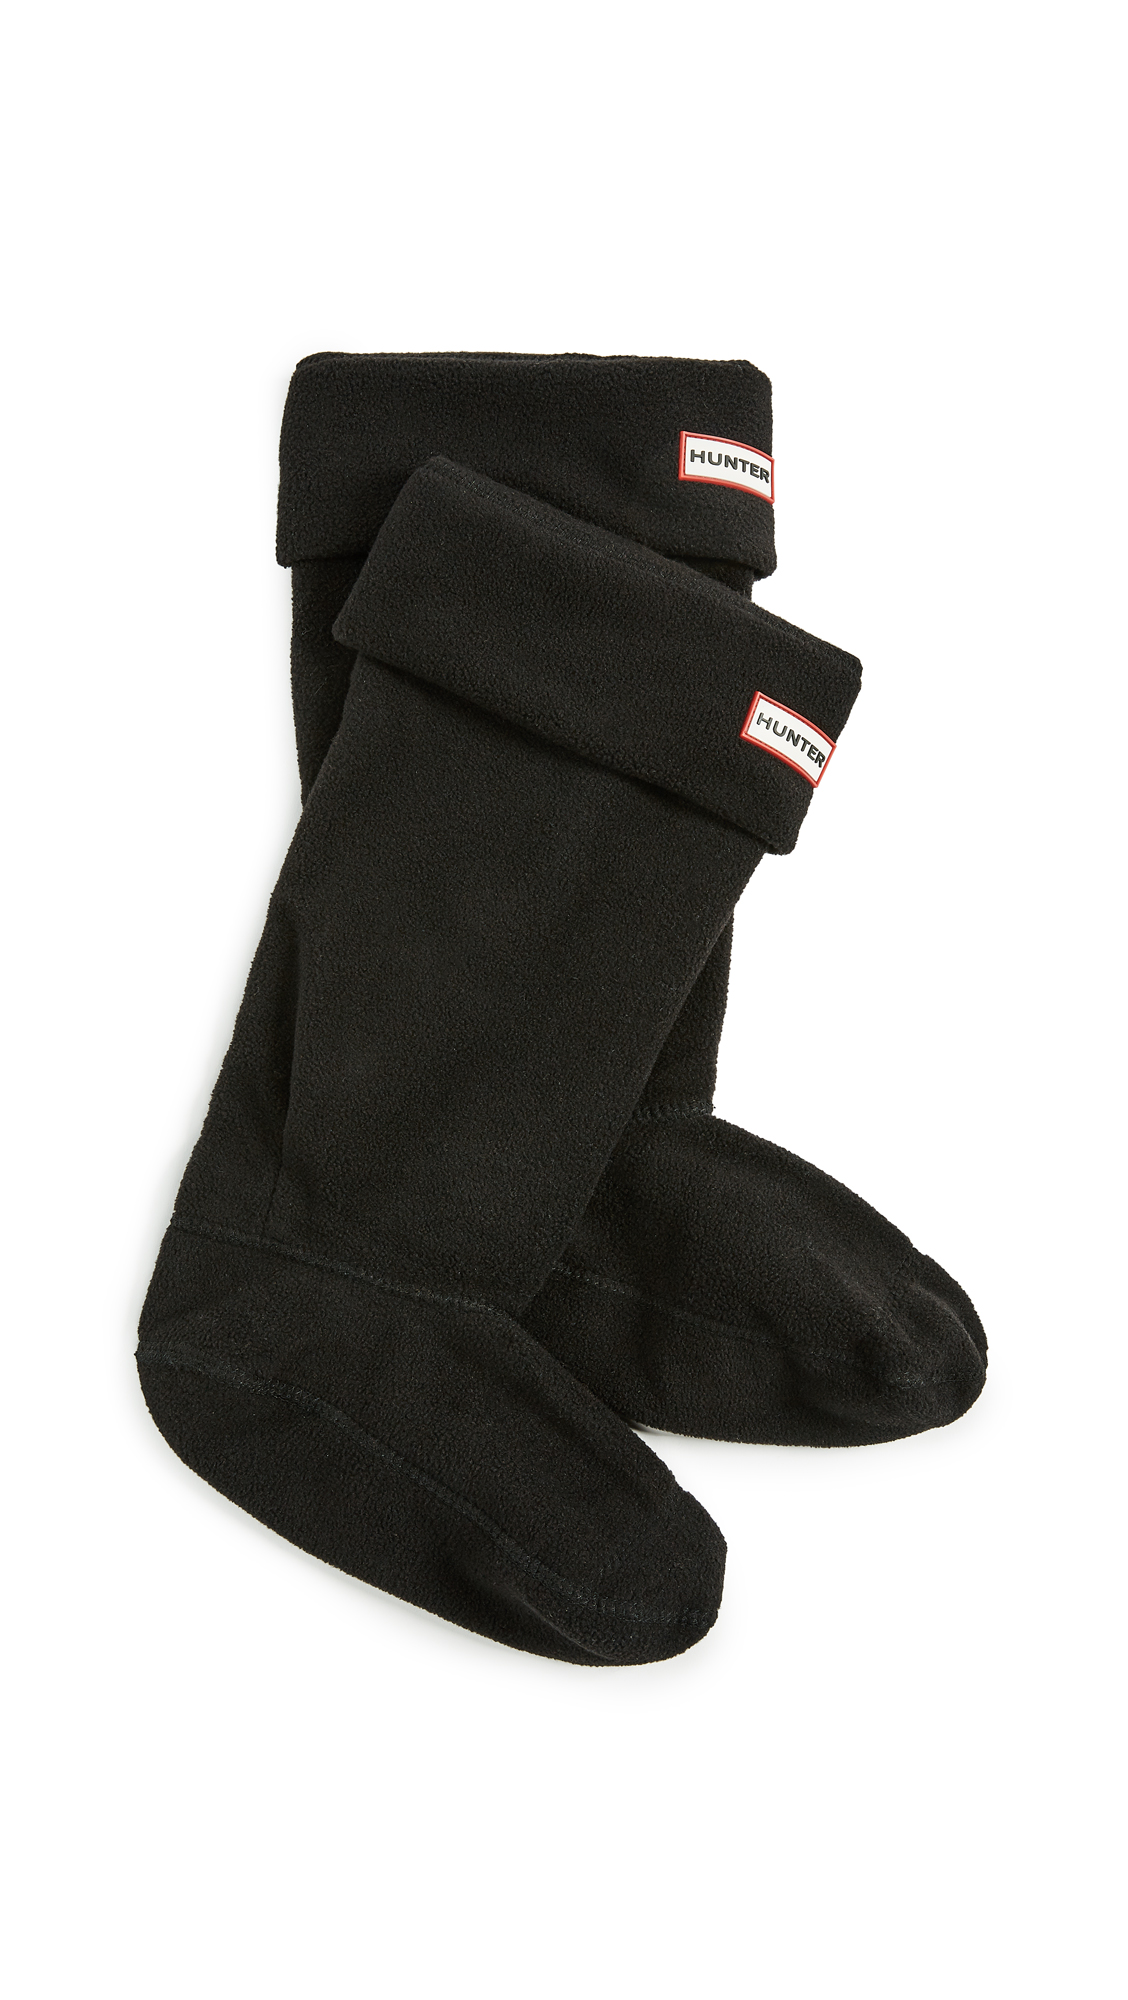 Hunter Boots Boot Socks - Black